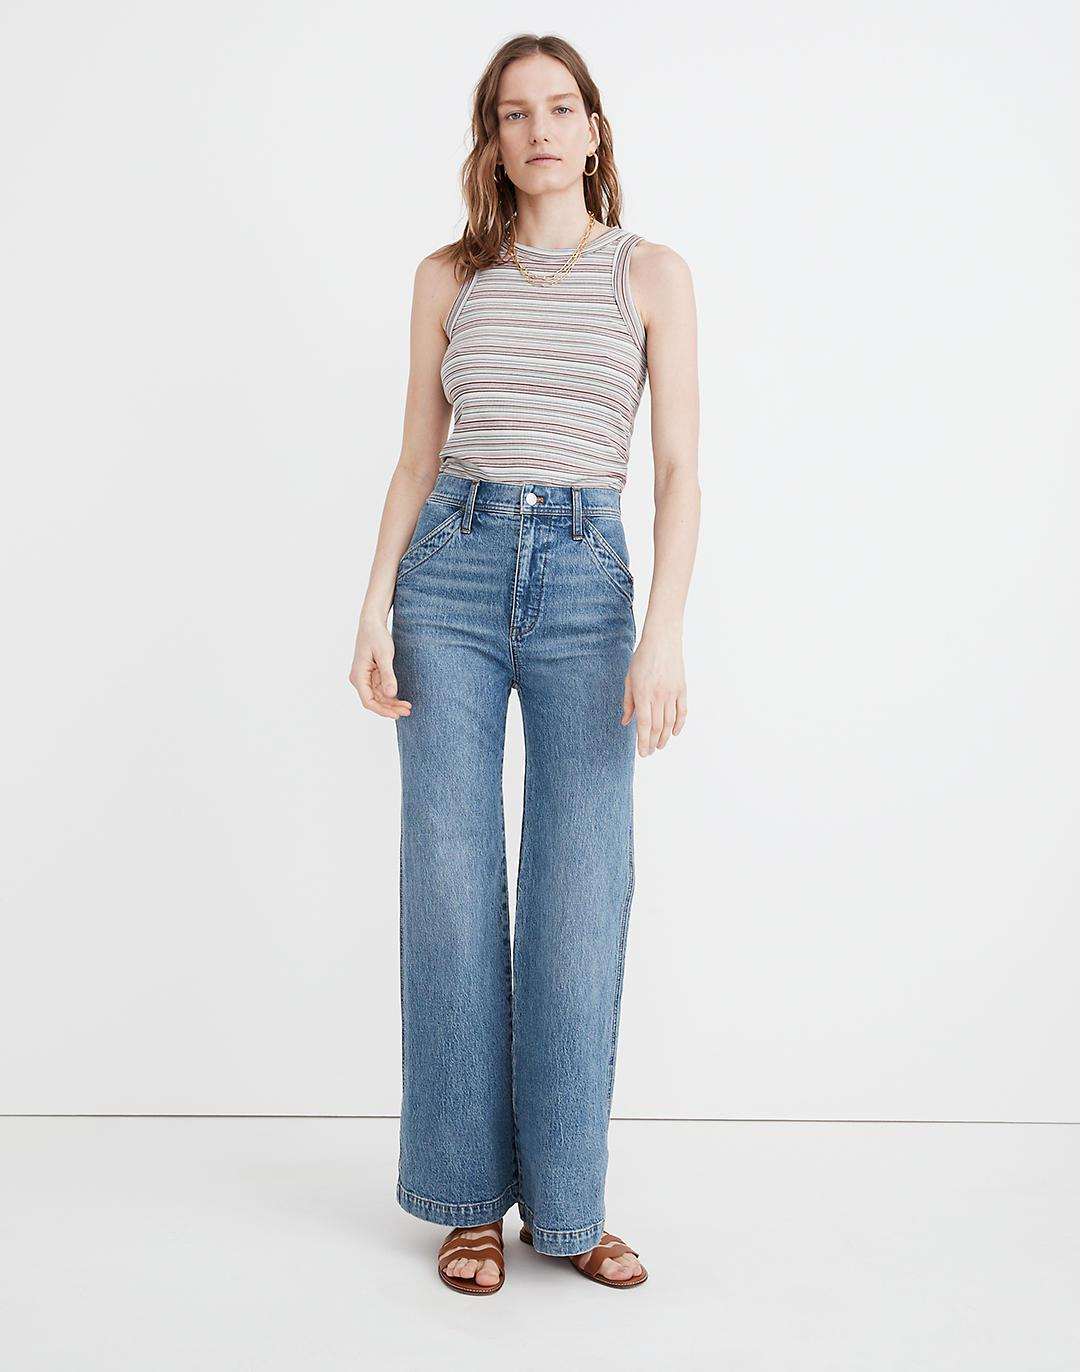 """11"""" High-Rise Flare Jeans in Erickson Wash: Stitched-Pocket Edition"""